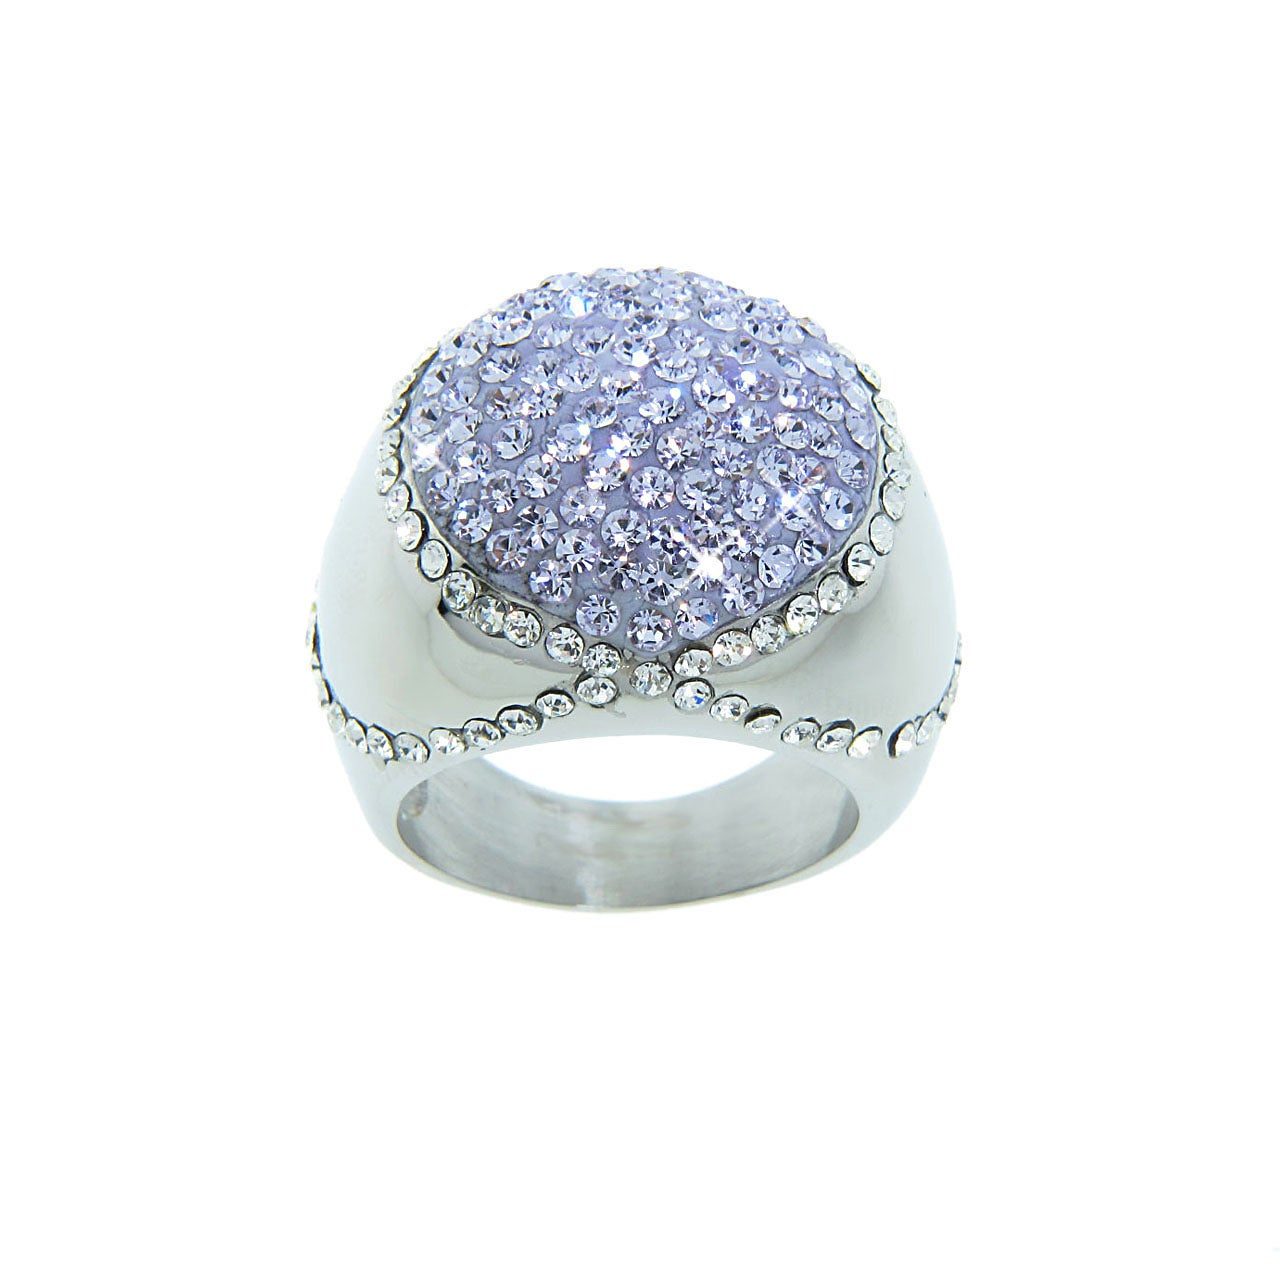 Eternally Haute Stainless Steel Violet and White Crystal Cocktail Ring